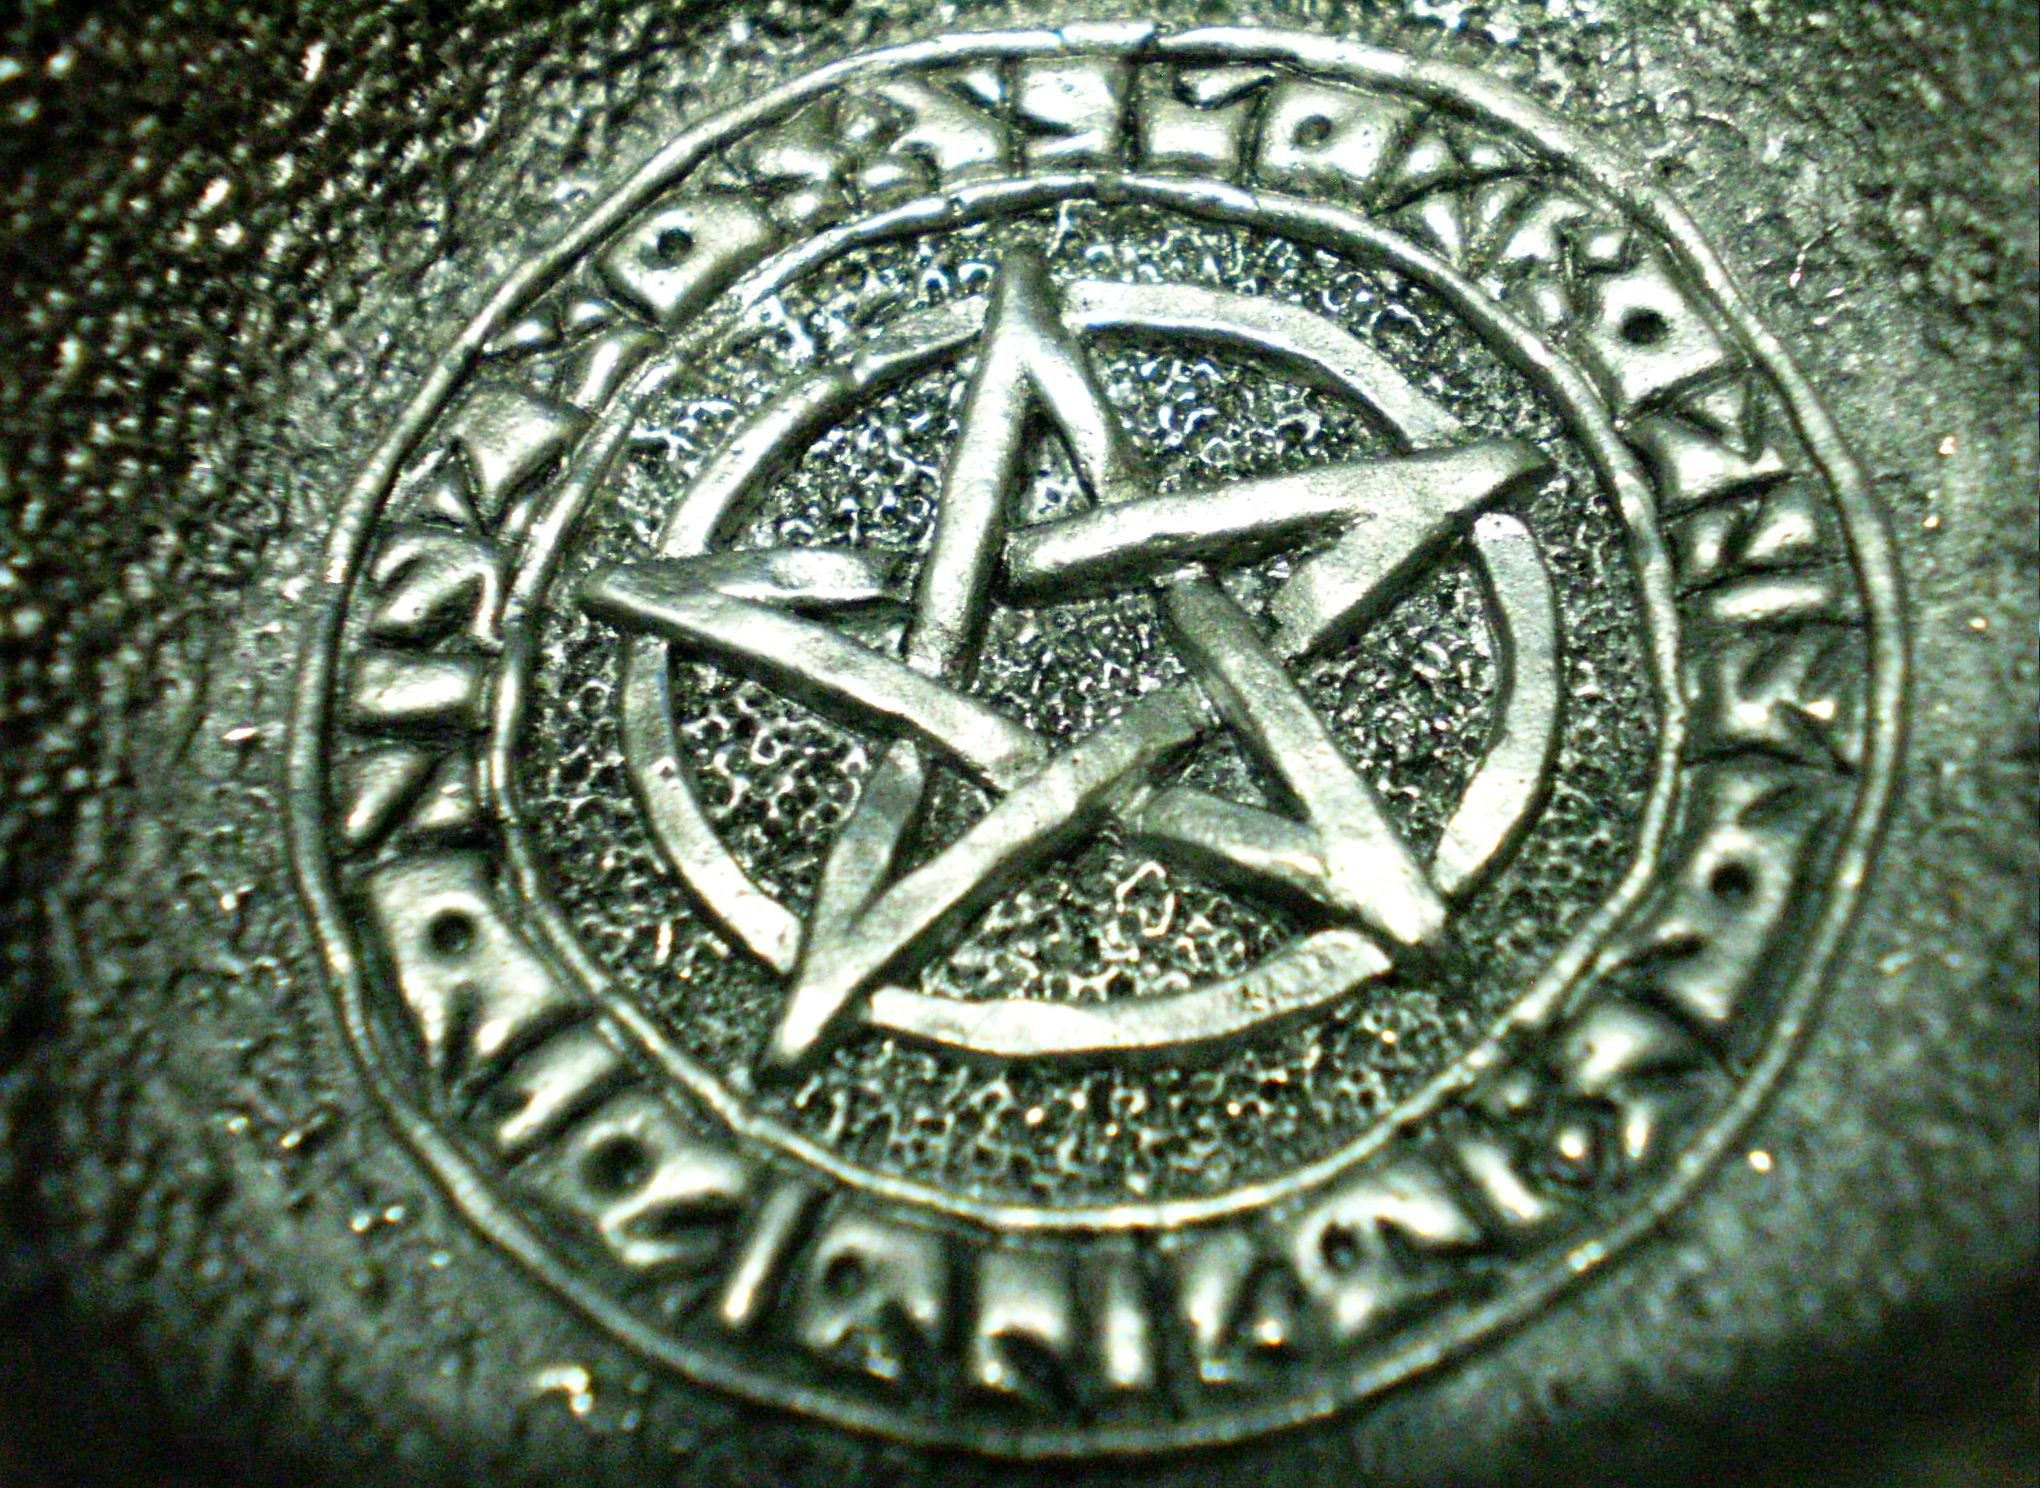 Free Wiccan Wallpapers (38 Wallpapers) – HD Wallpapers